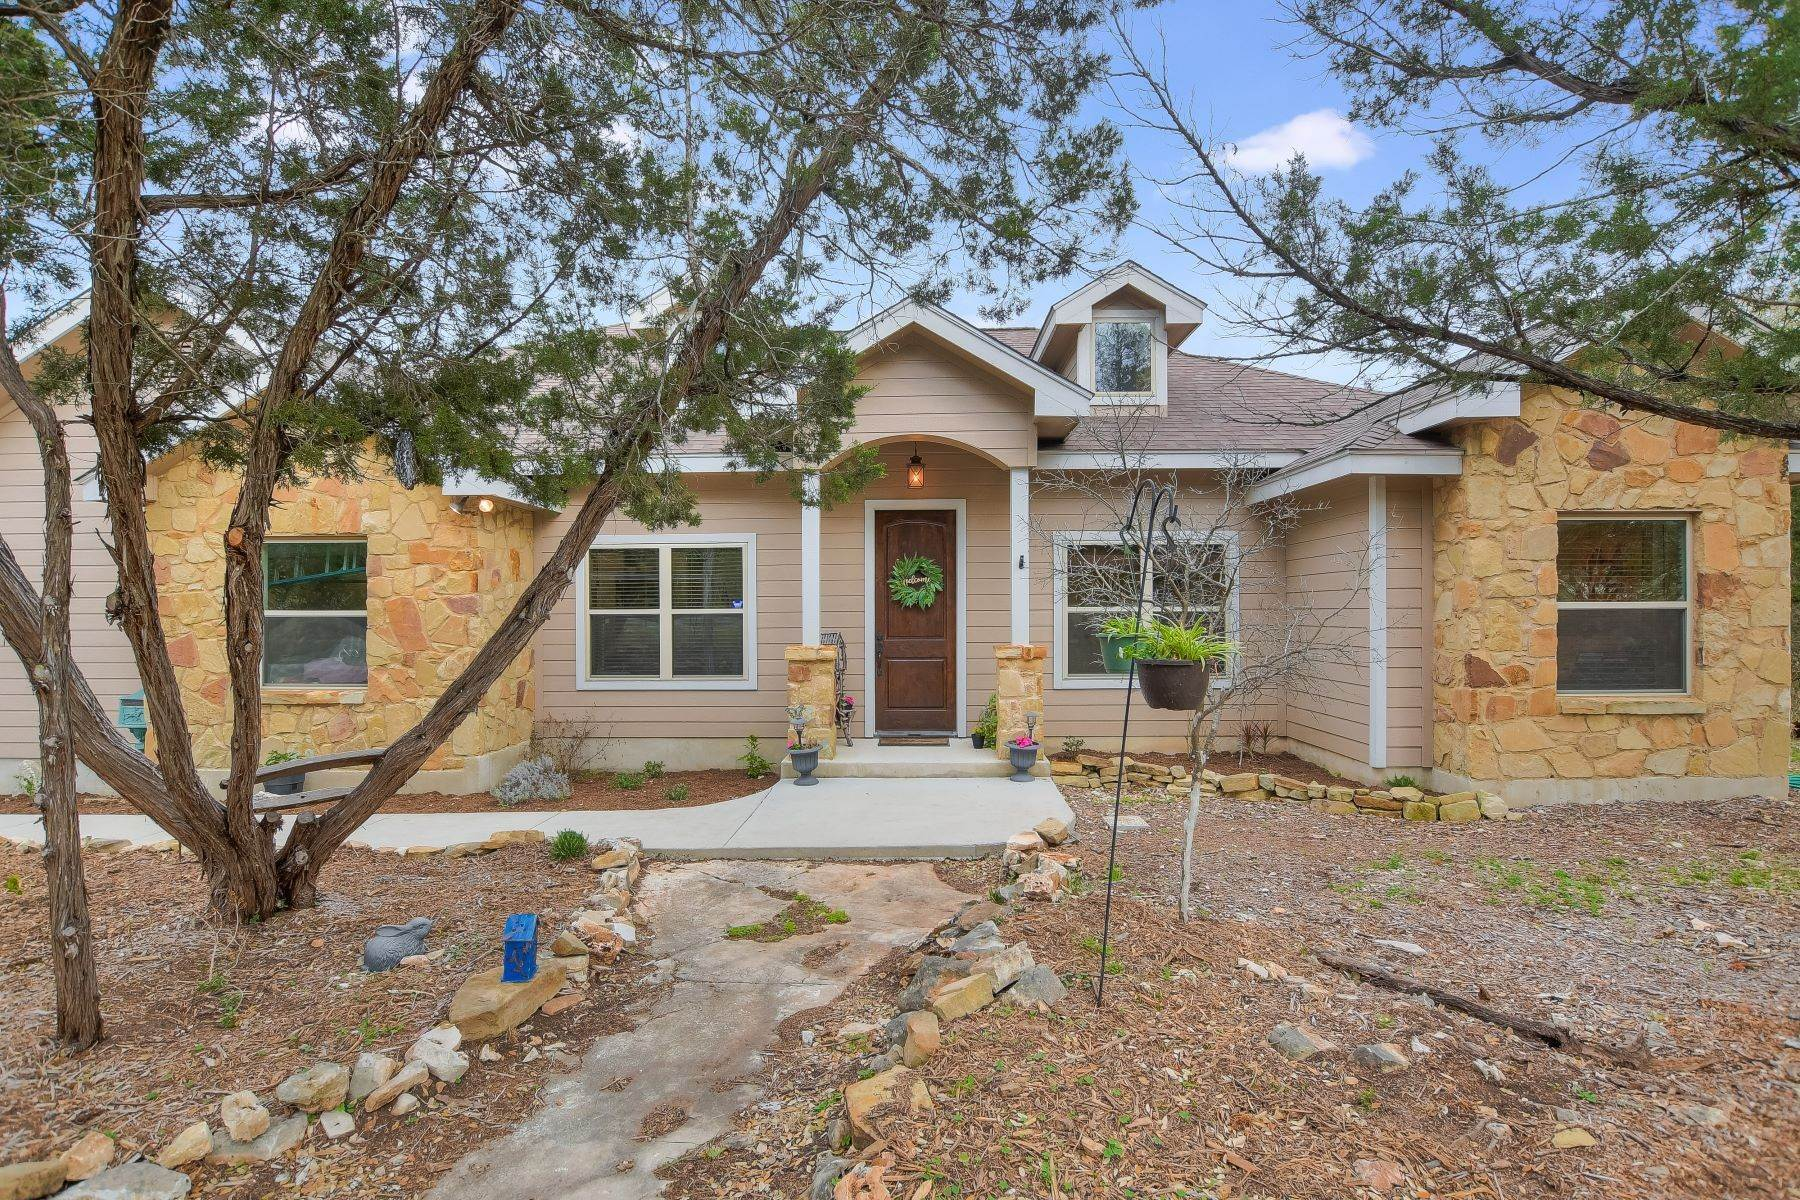 Single Family Homes for Sale at Beautiful Home in Hill Country Retreat 3948 Summit Drive New Braunfels, Texas 78132 United States